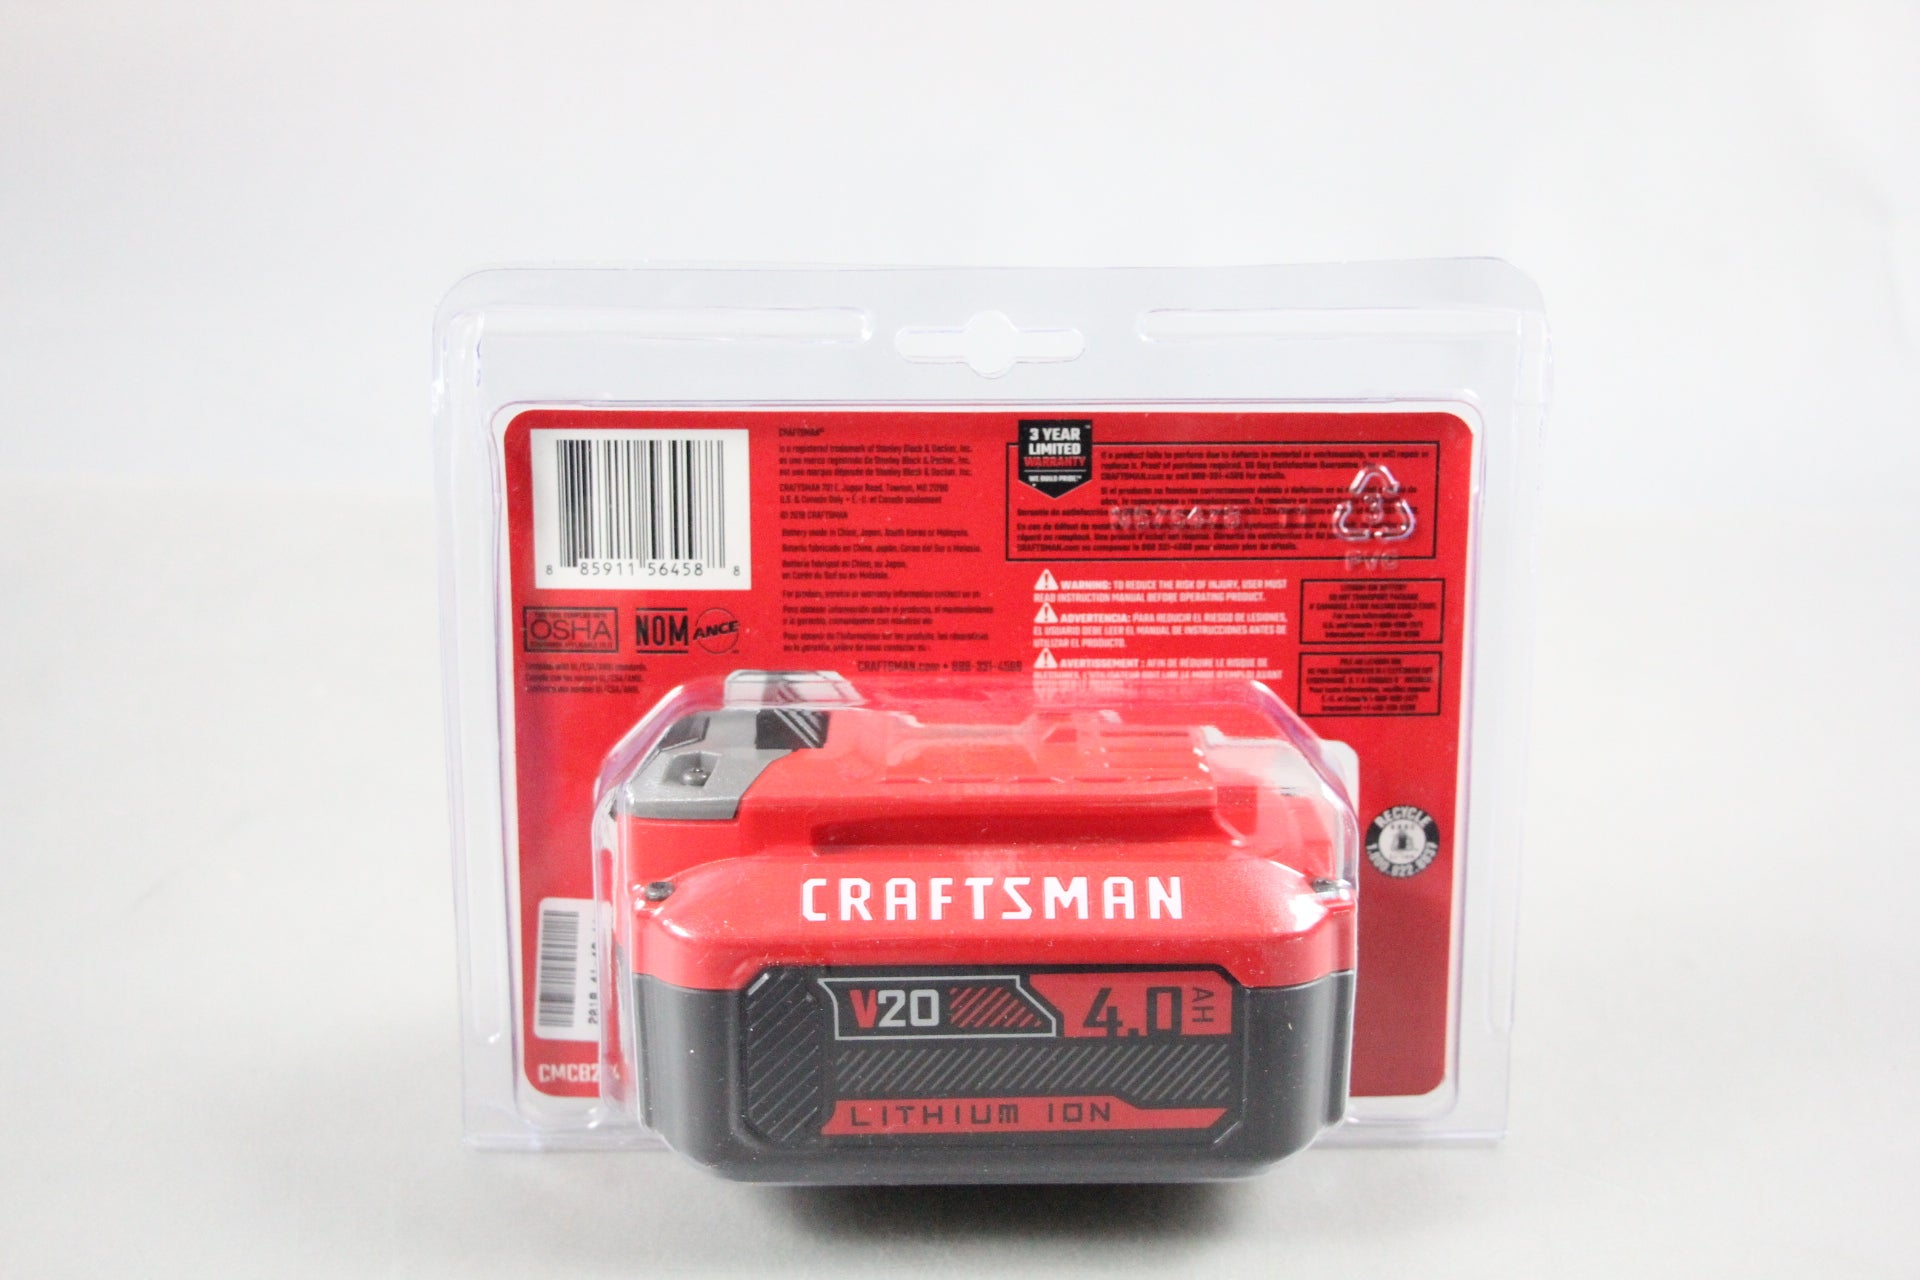 Craftsman CMCB204 20V 4.0Ah Lithium-Ion Battery *NEW*